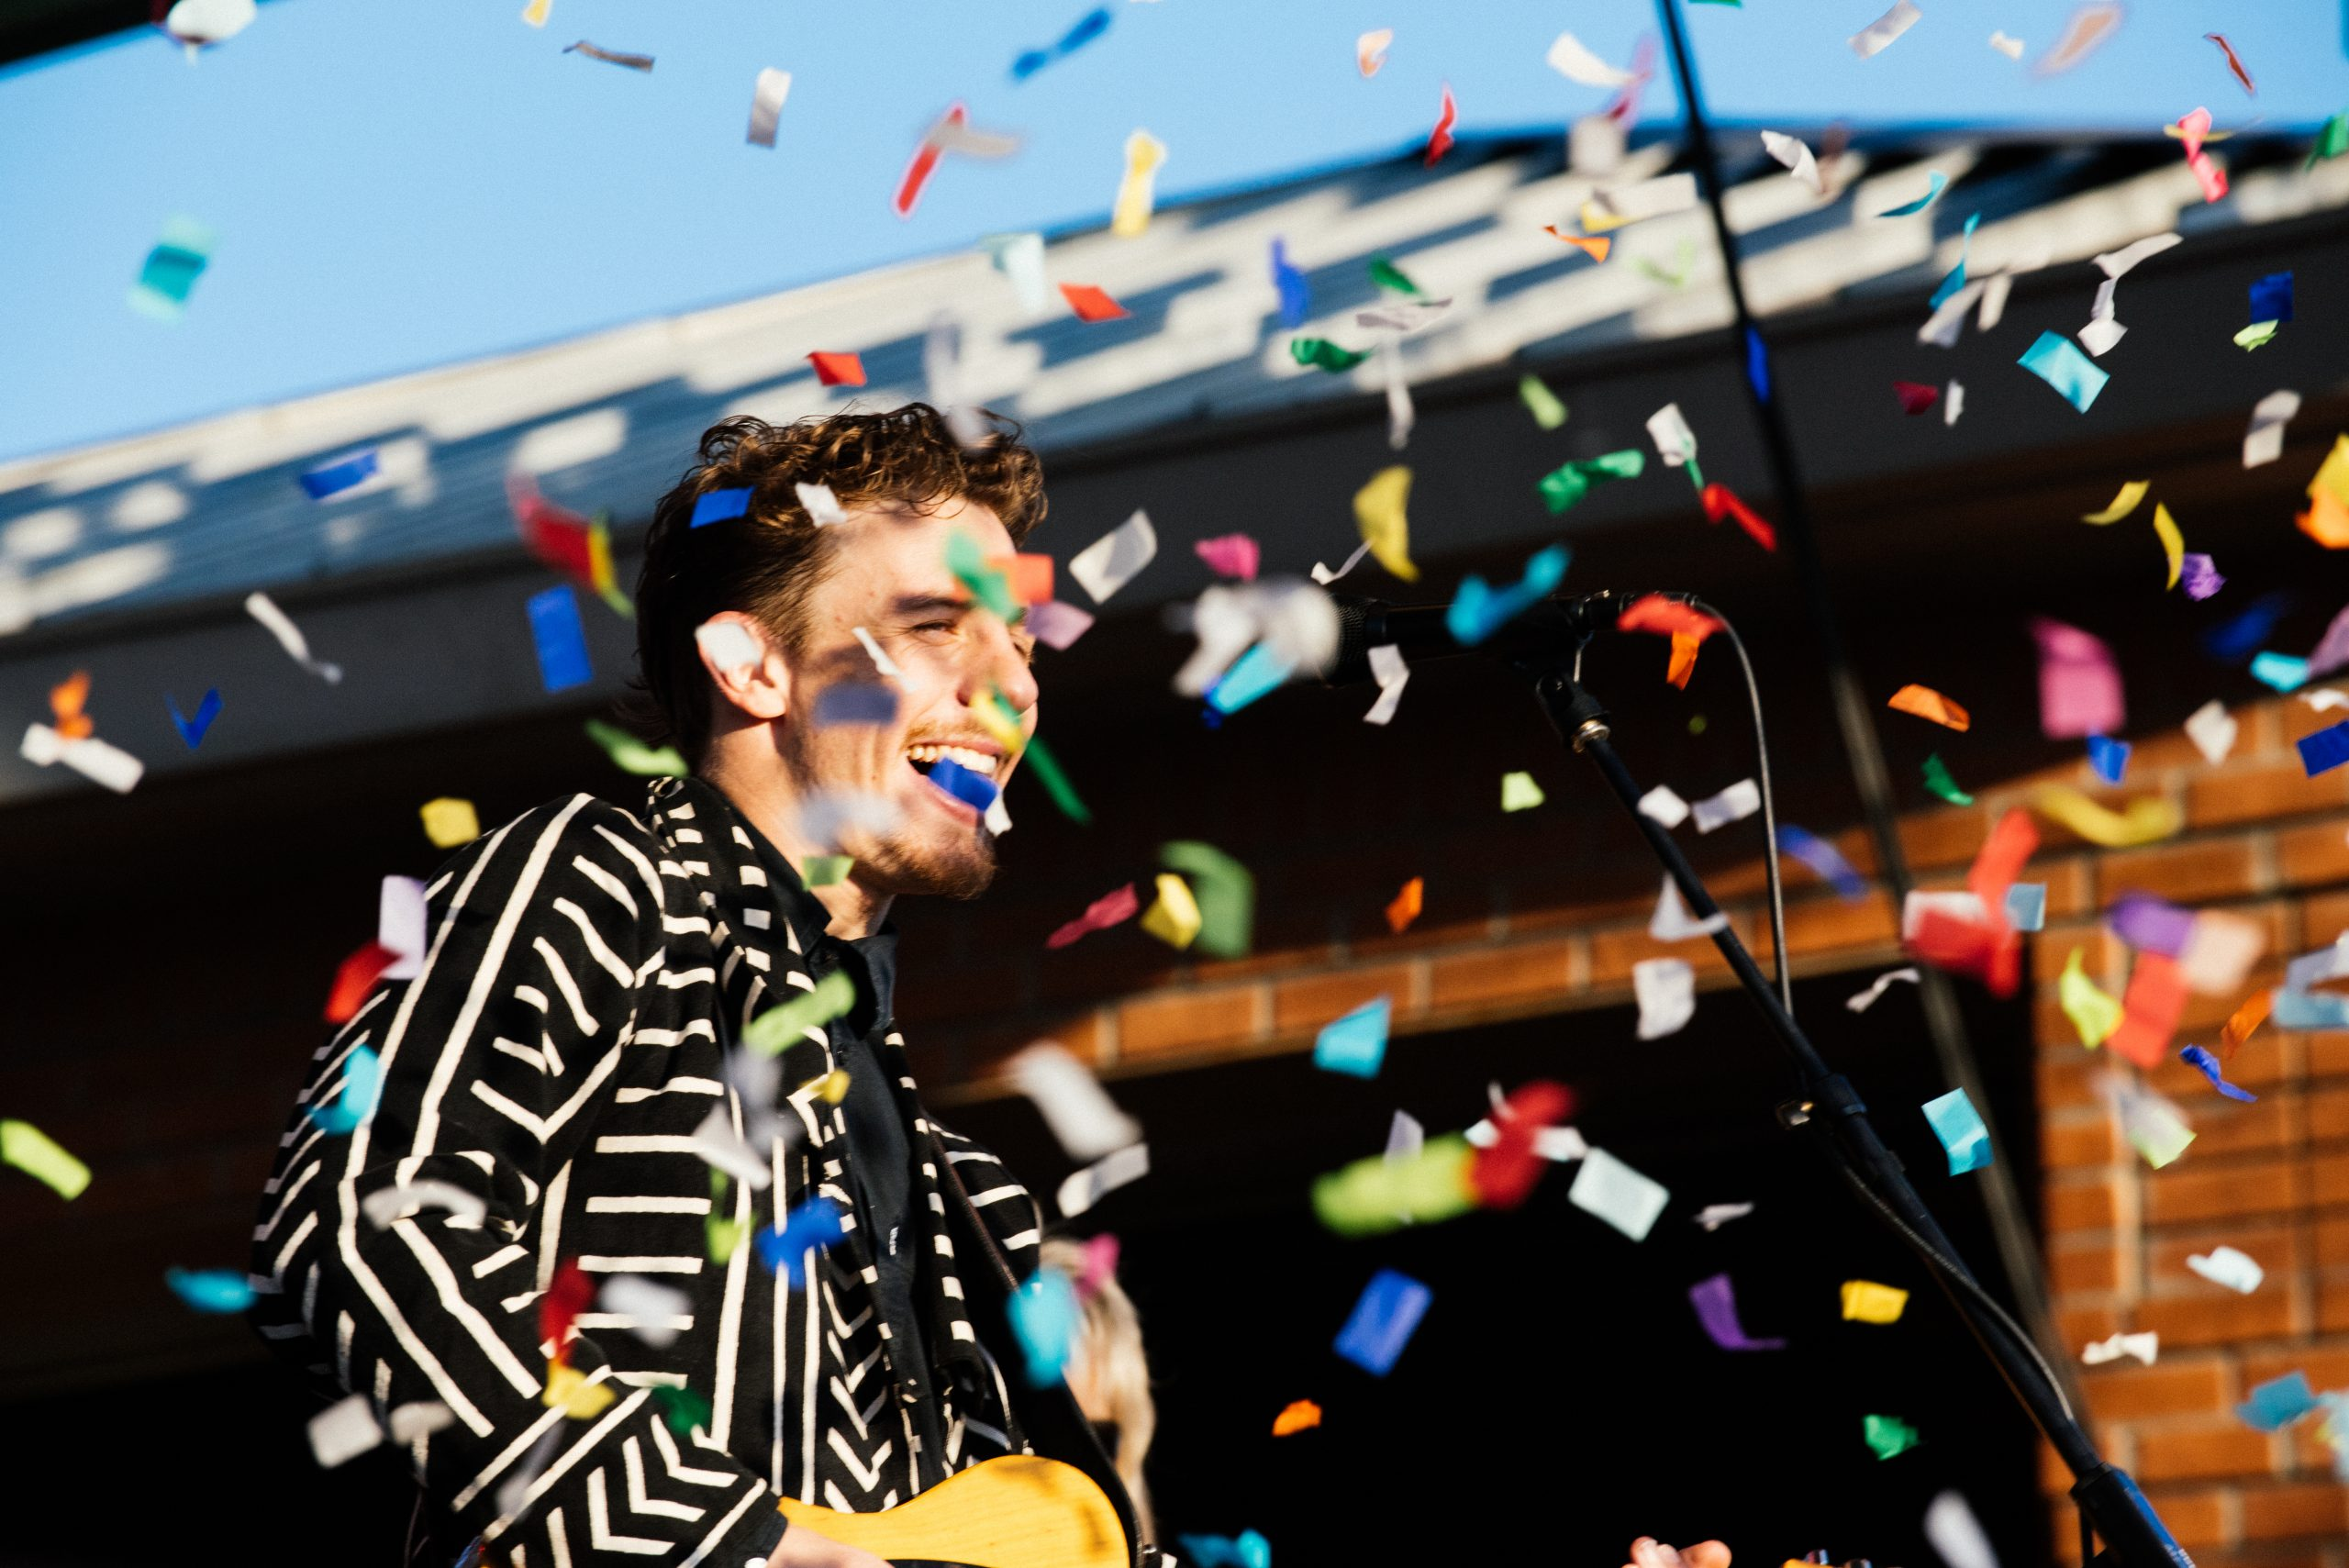 Performer in black and white jacket on stage with confetti flowing